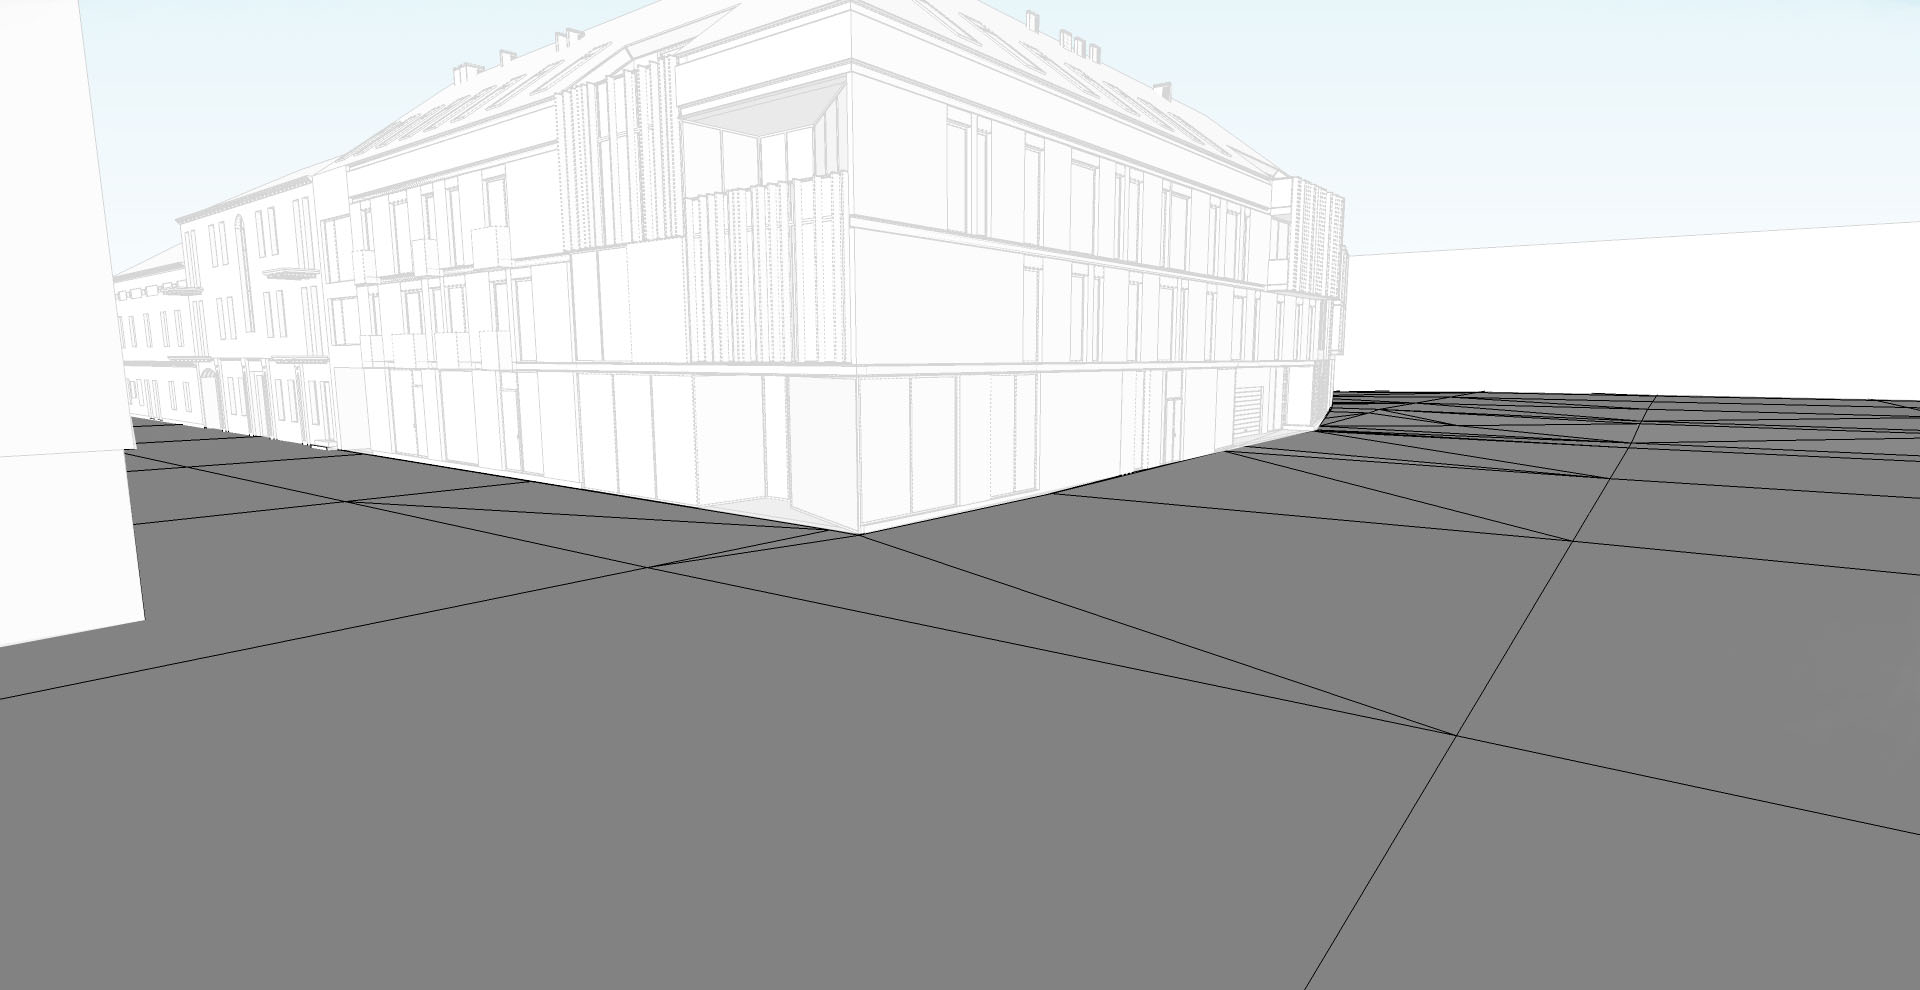 Basic landscape modelling with sketchup. 3D architect